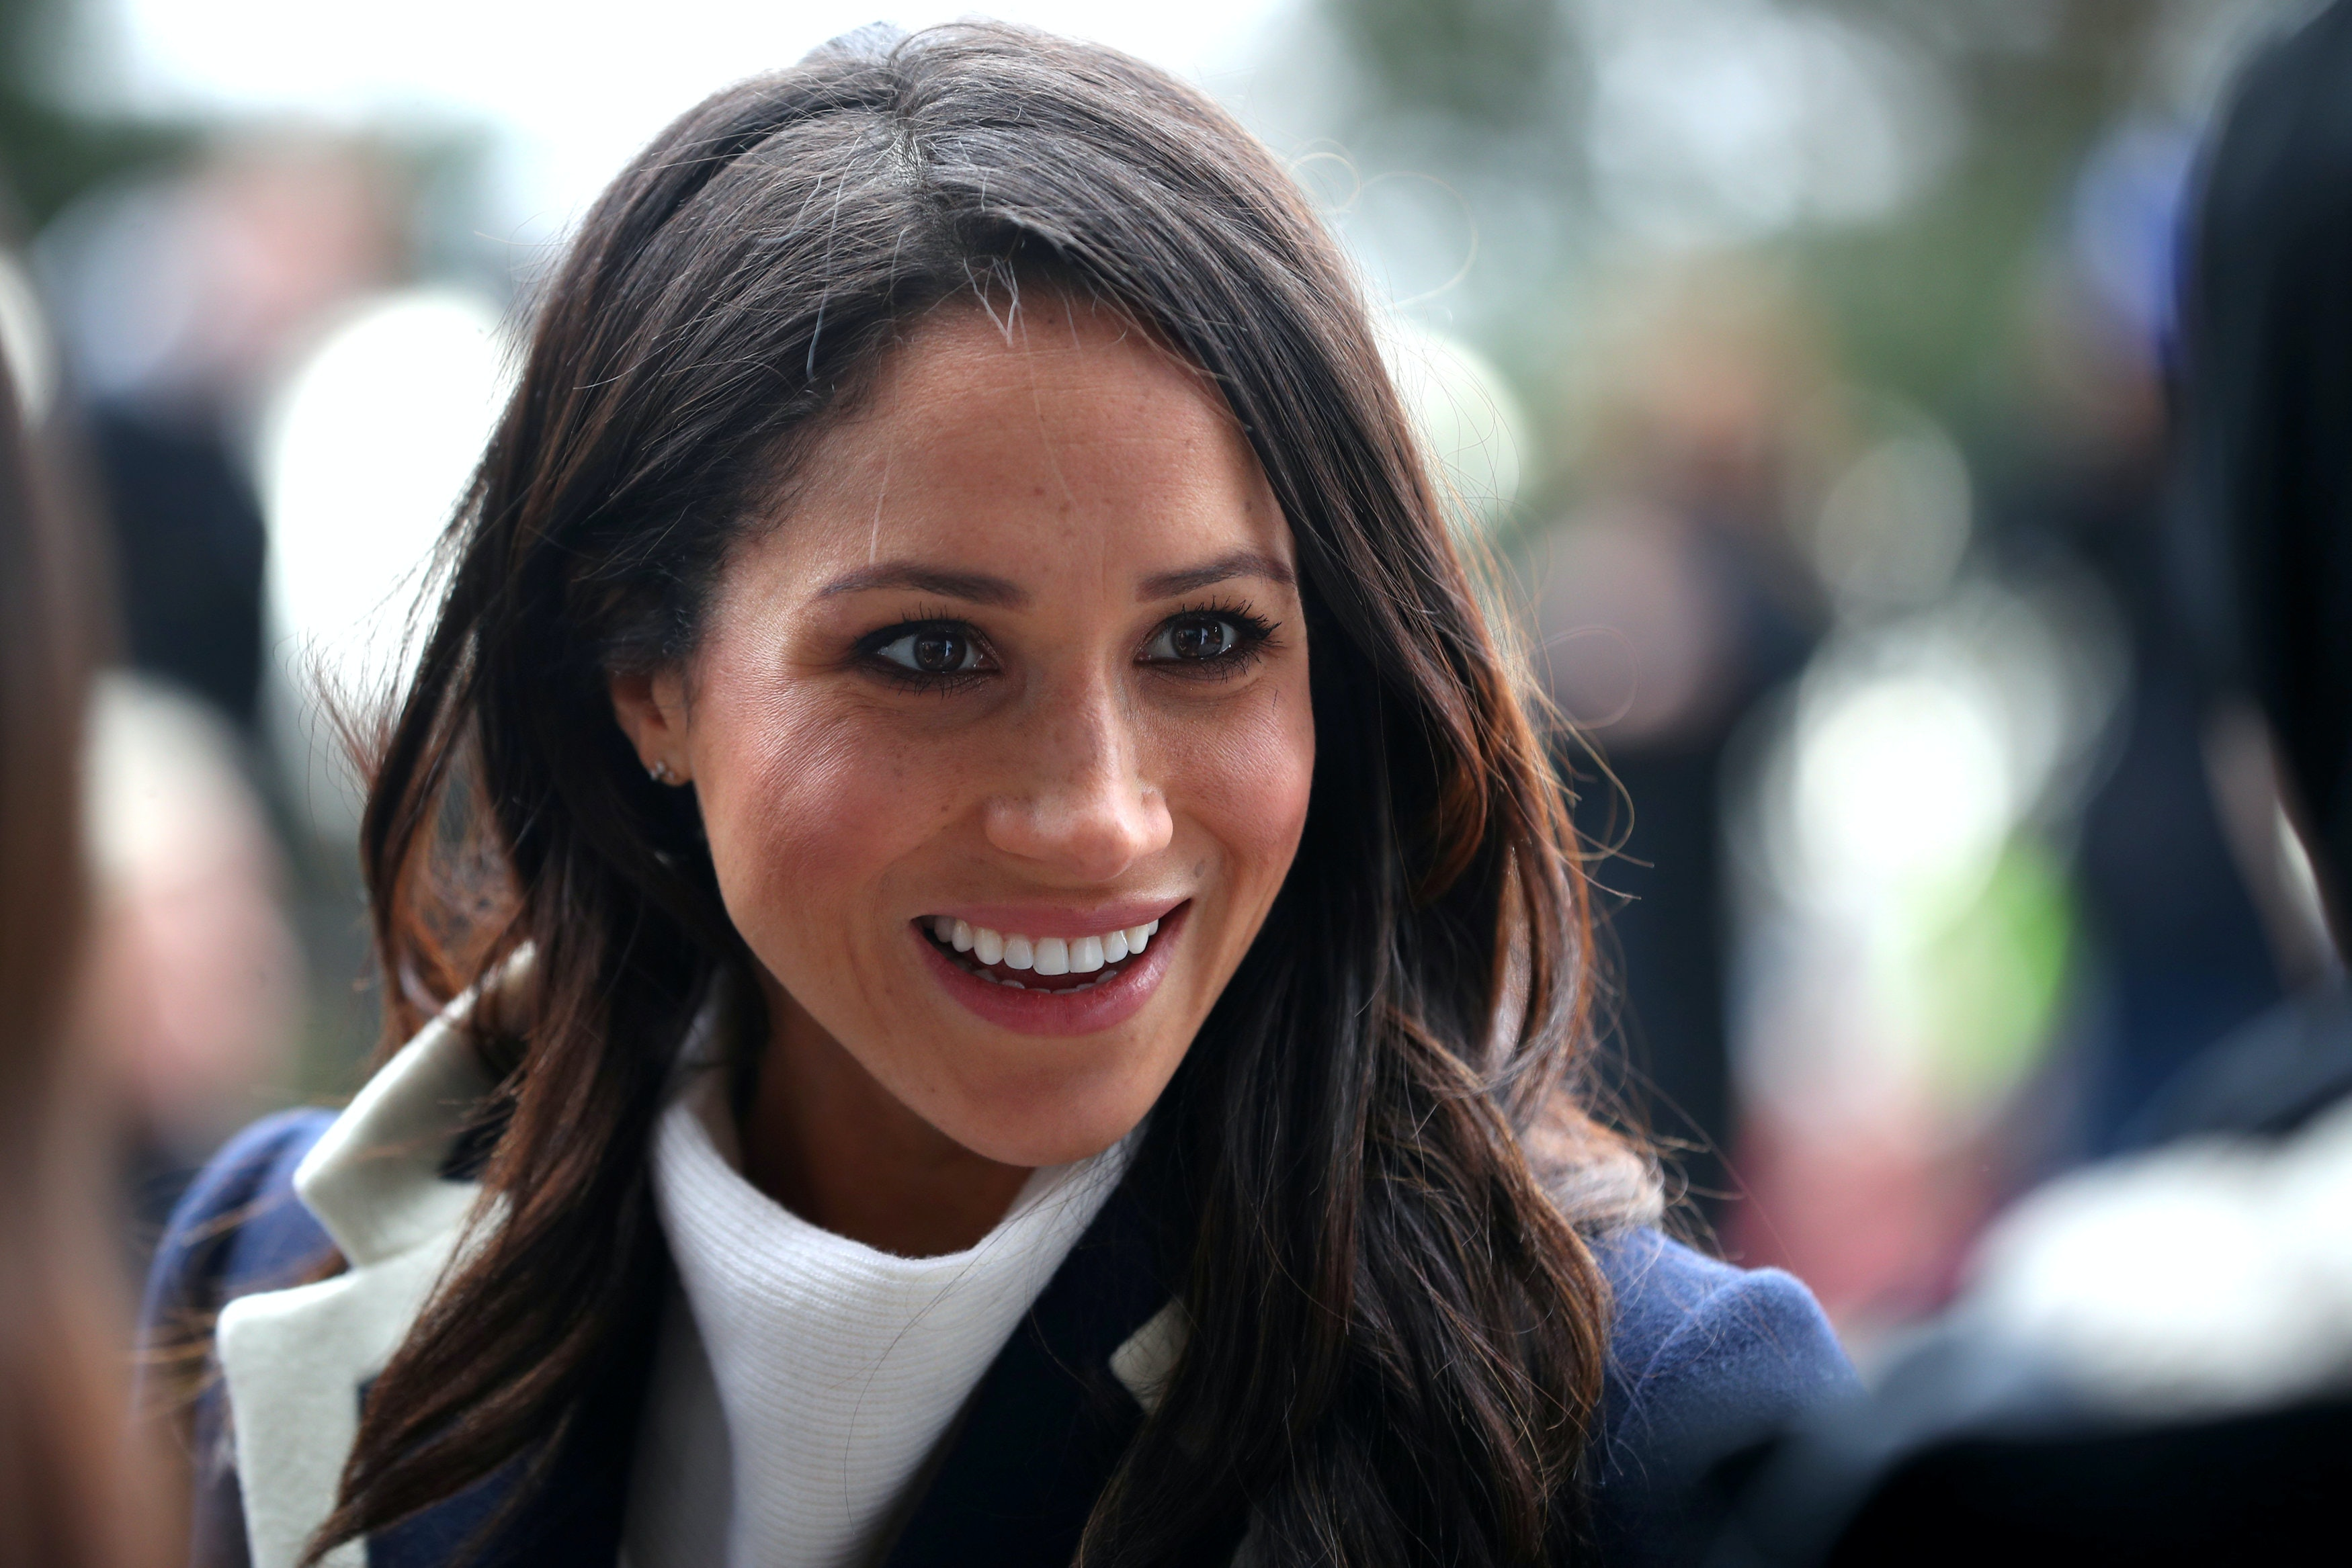 Meghan Markle Has Reportedly Chosen a Maid of Honor for the Royal Wedding